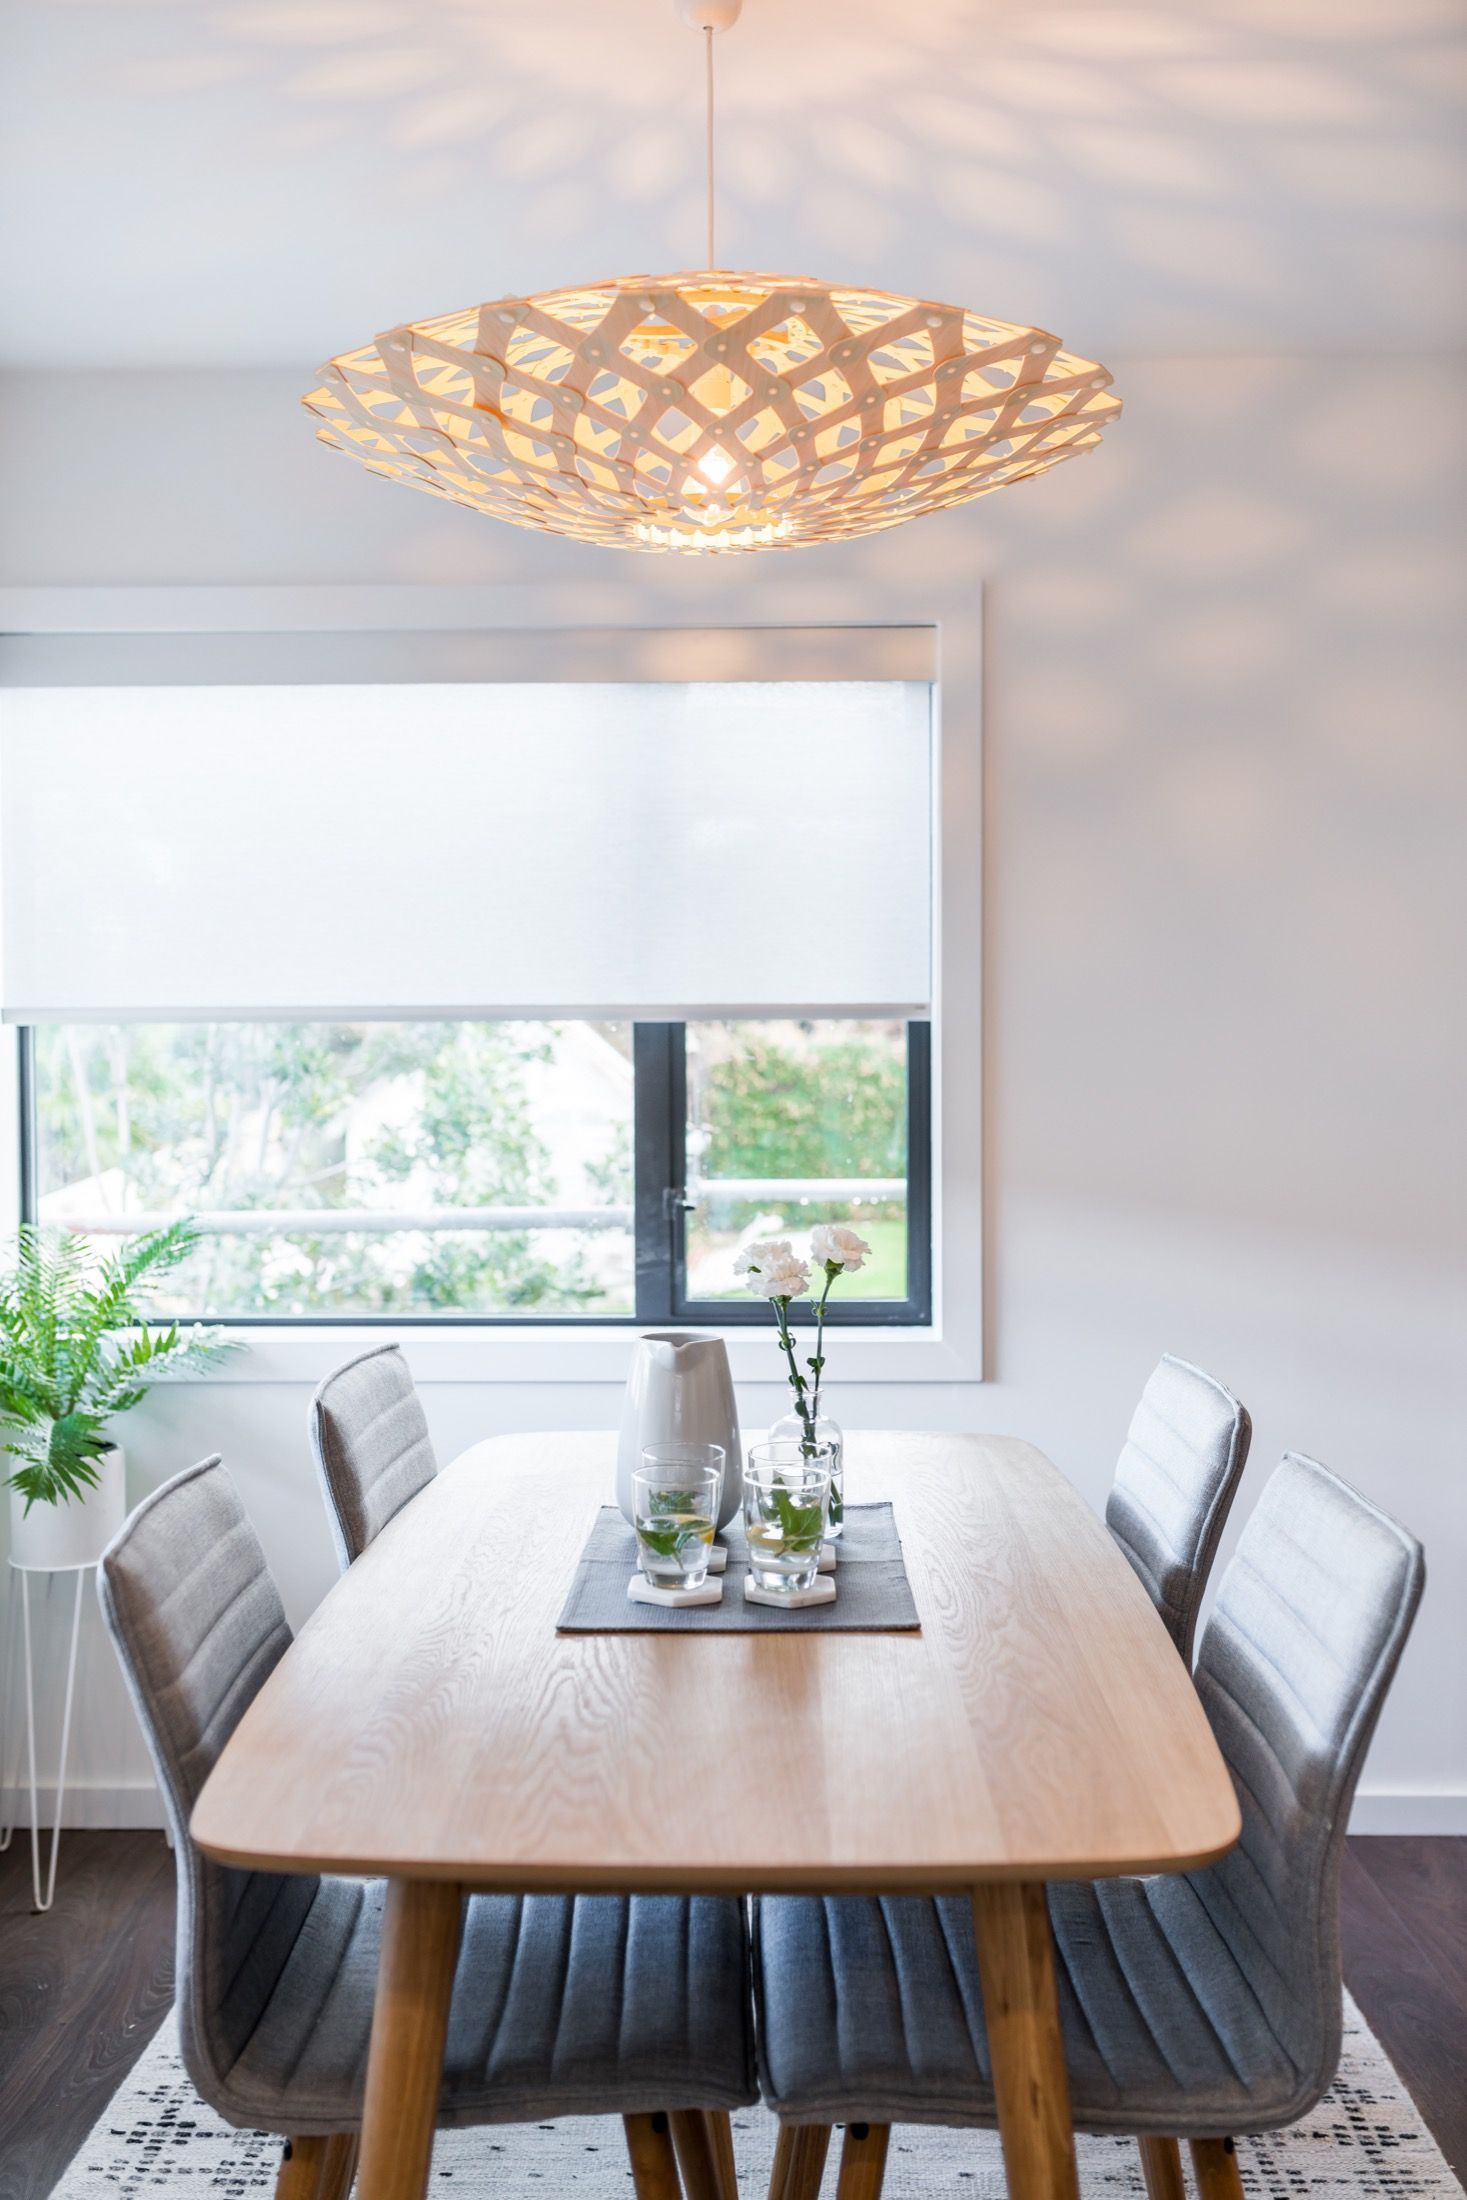 A Flax Pendant Is Perfect Over A Dining Table As It Sheds Light Downward Thr Ceiling Pendant Lights Lights Over Dining Table Pendant Lighting Over Dining Table